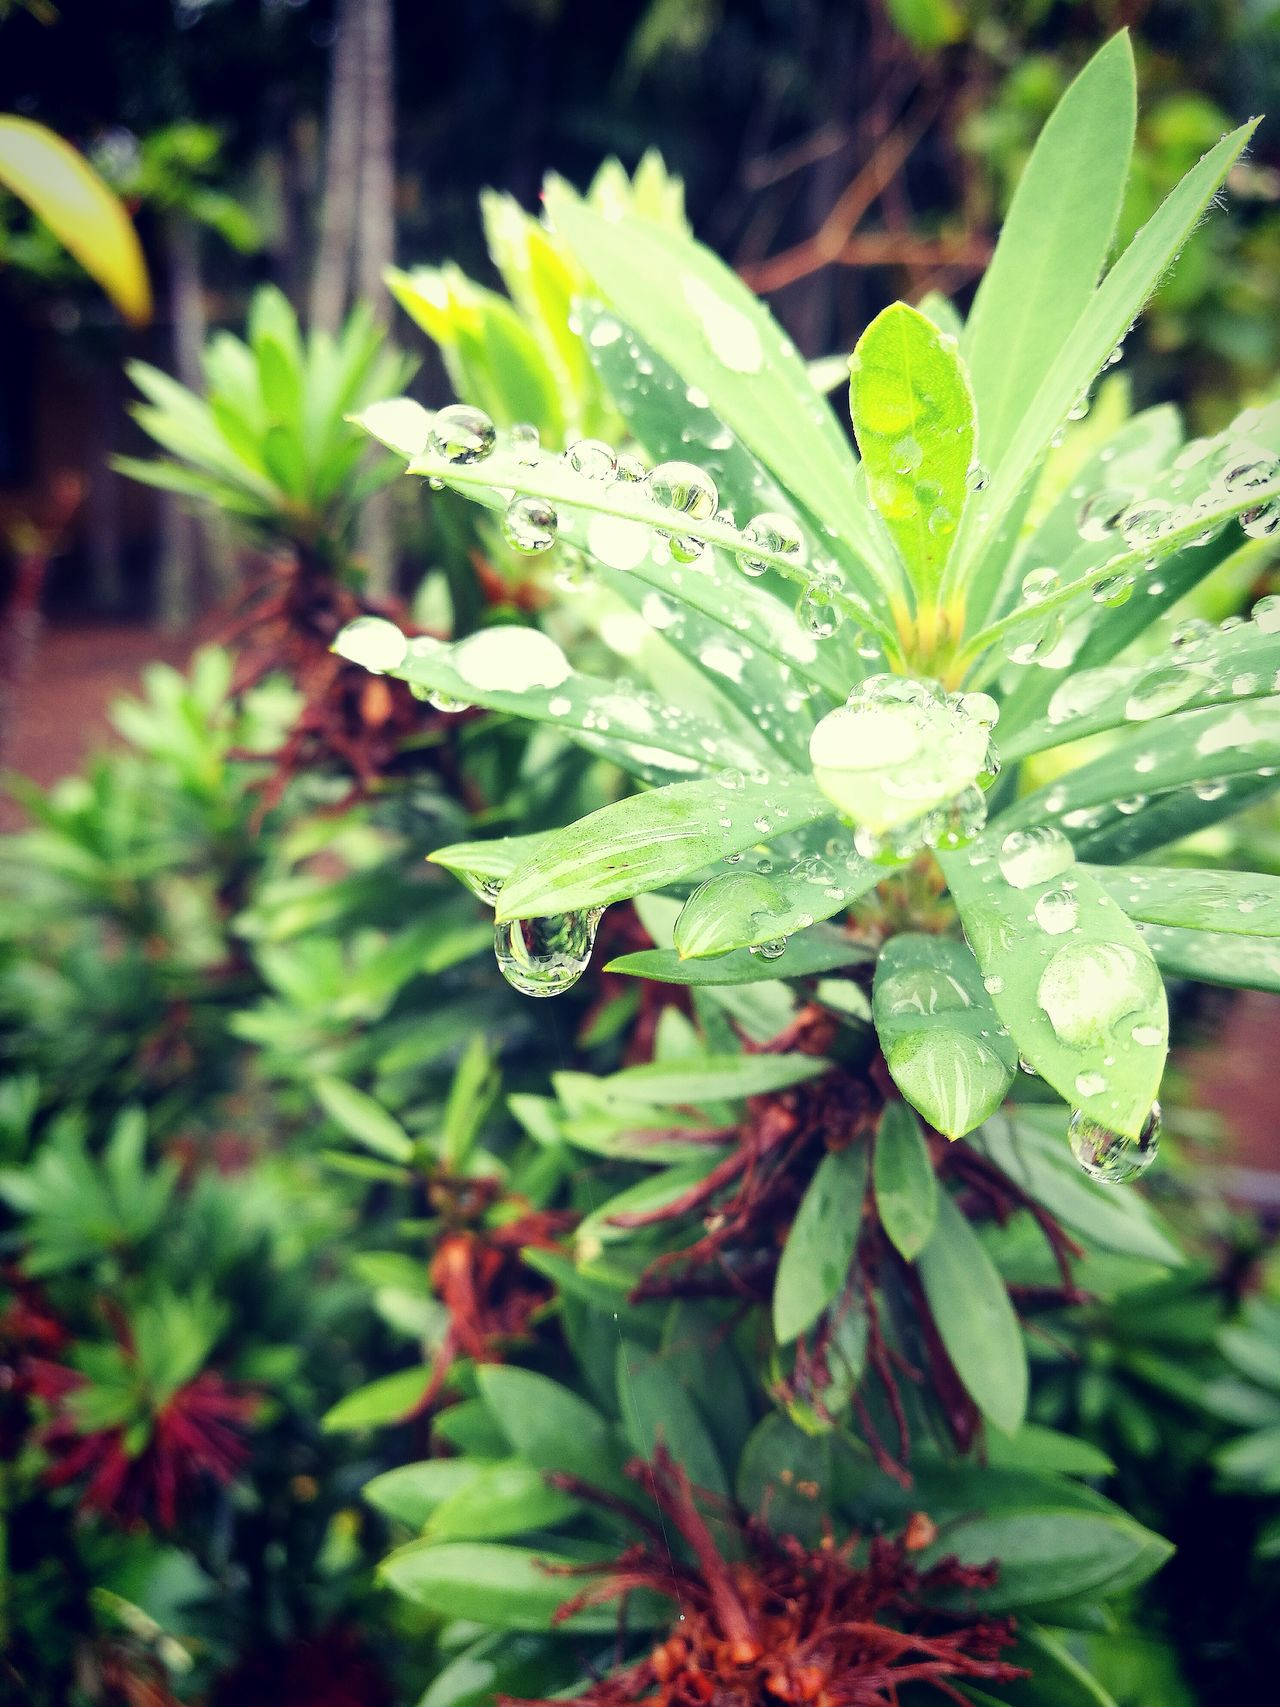 Nature Growth Plant Leaf Beauty In Nature Freshness Fragility Close-up Flower Outdoors Green Color Day No People Flower Head Animal Themes Passion Flower Water Drops Drops Of Water